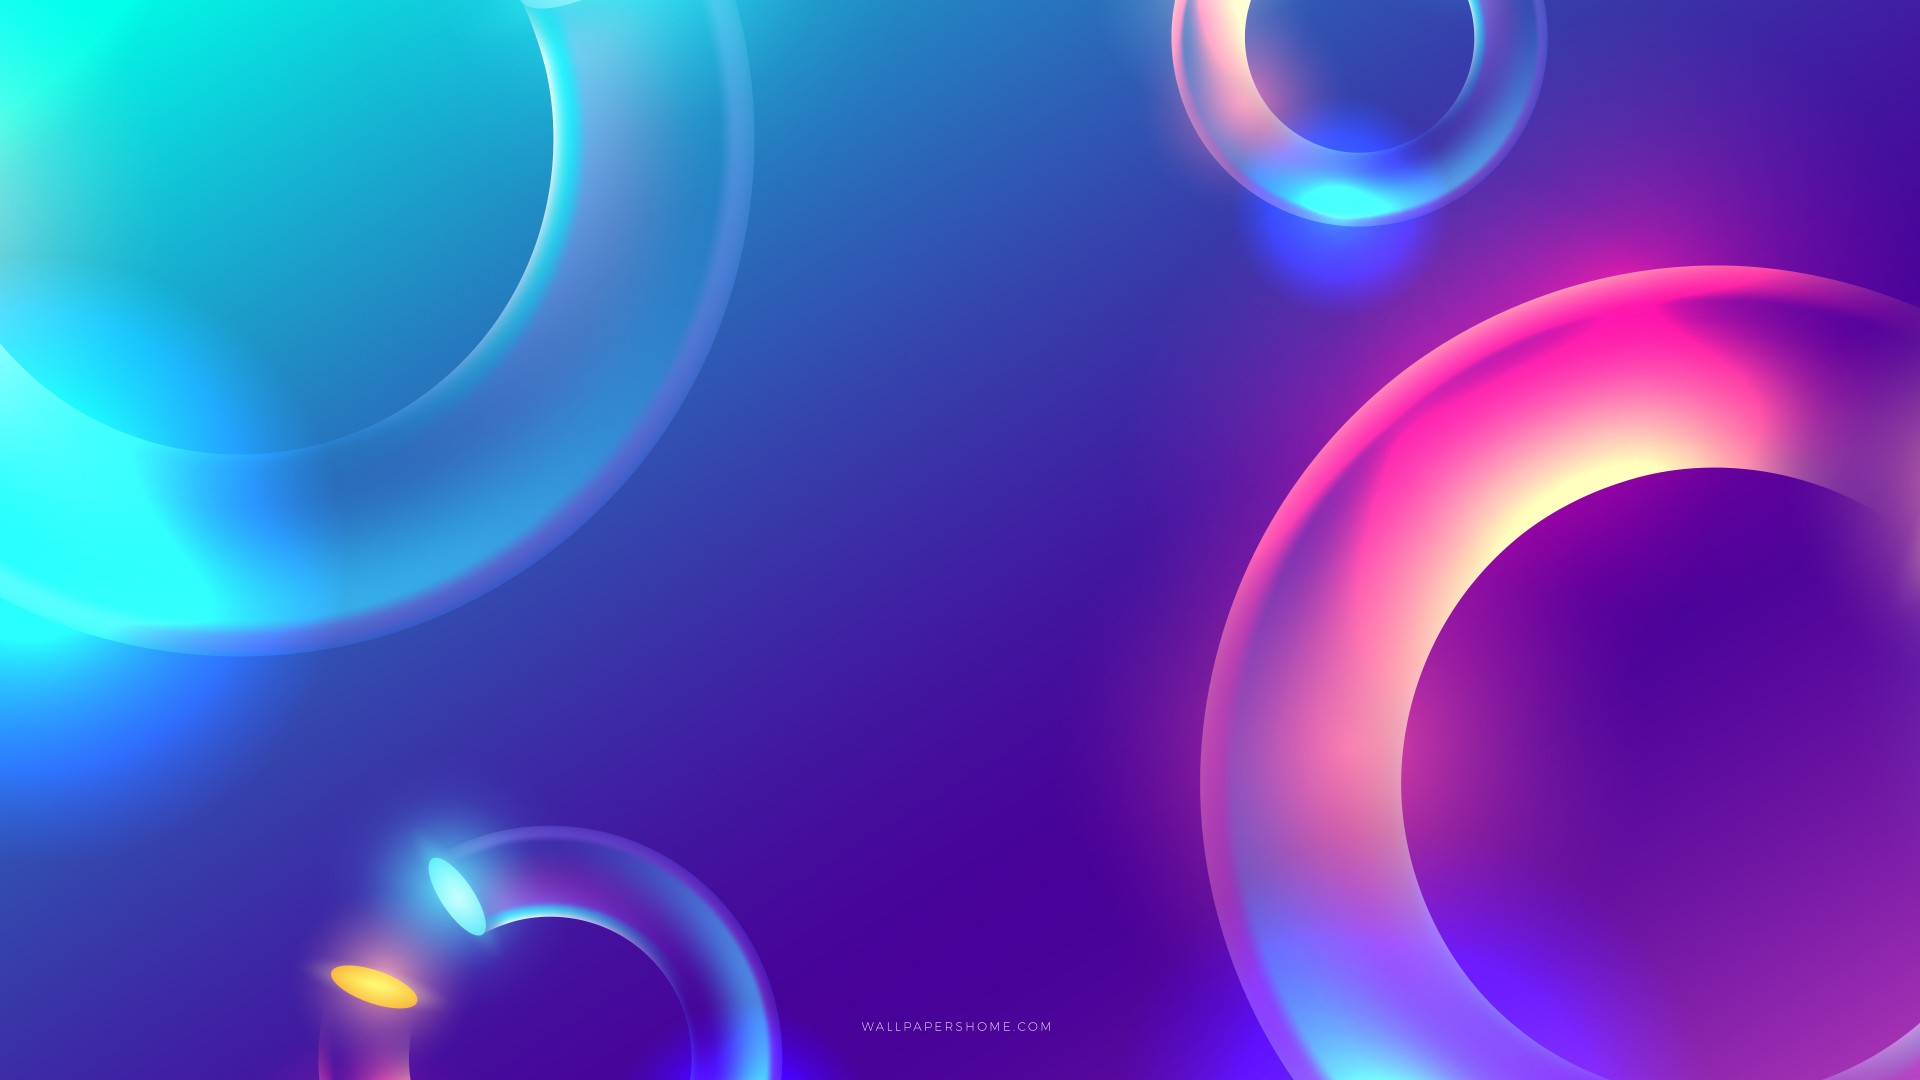 Wallpaper abstract, 3D, colorful, 8k, OS #21242